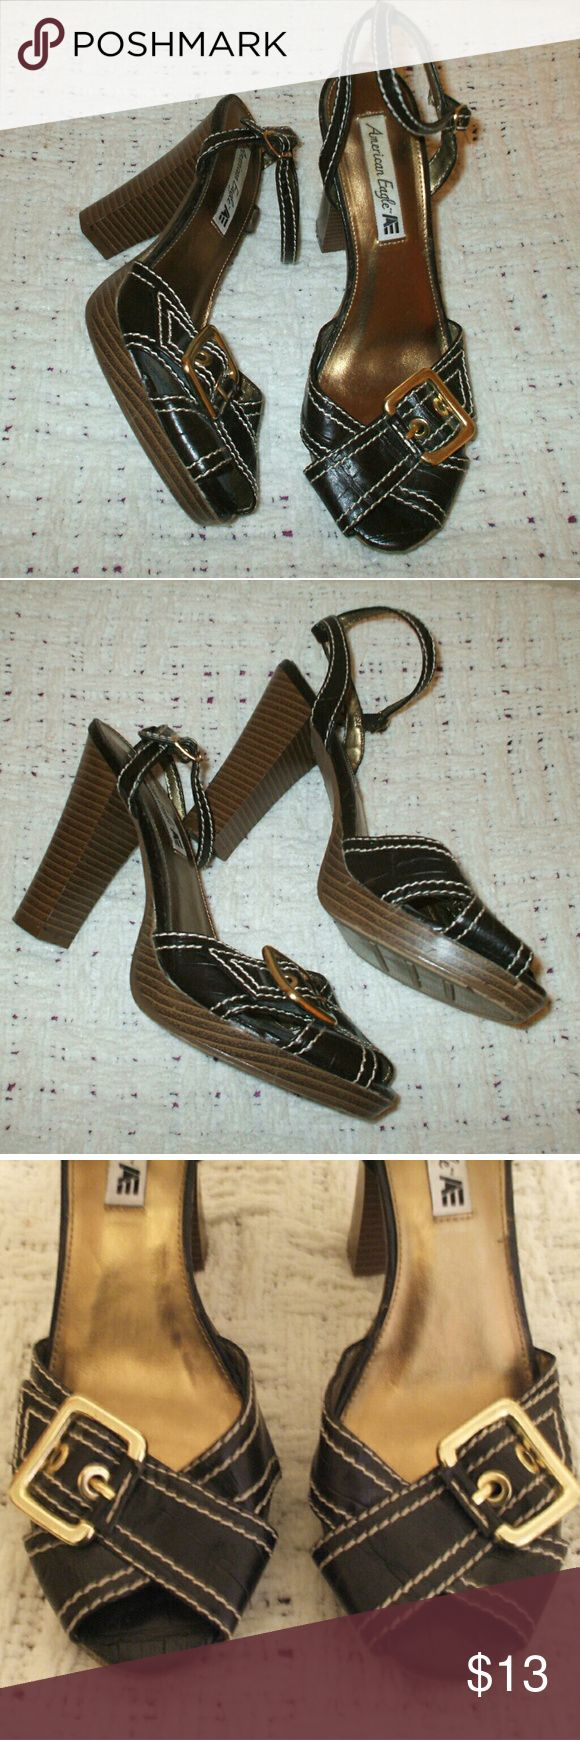 American Eagle Outfitters High Heel Shoes Brown with gold & faux wooden heels - Adjustable ankle straps - Really nice shape, only worn a couple of times American Eagle Outfitters Shoes Heels